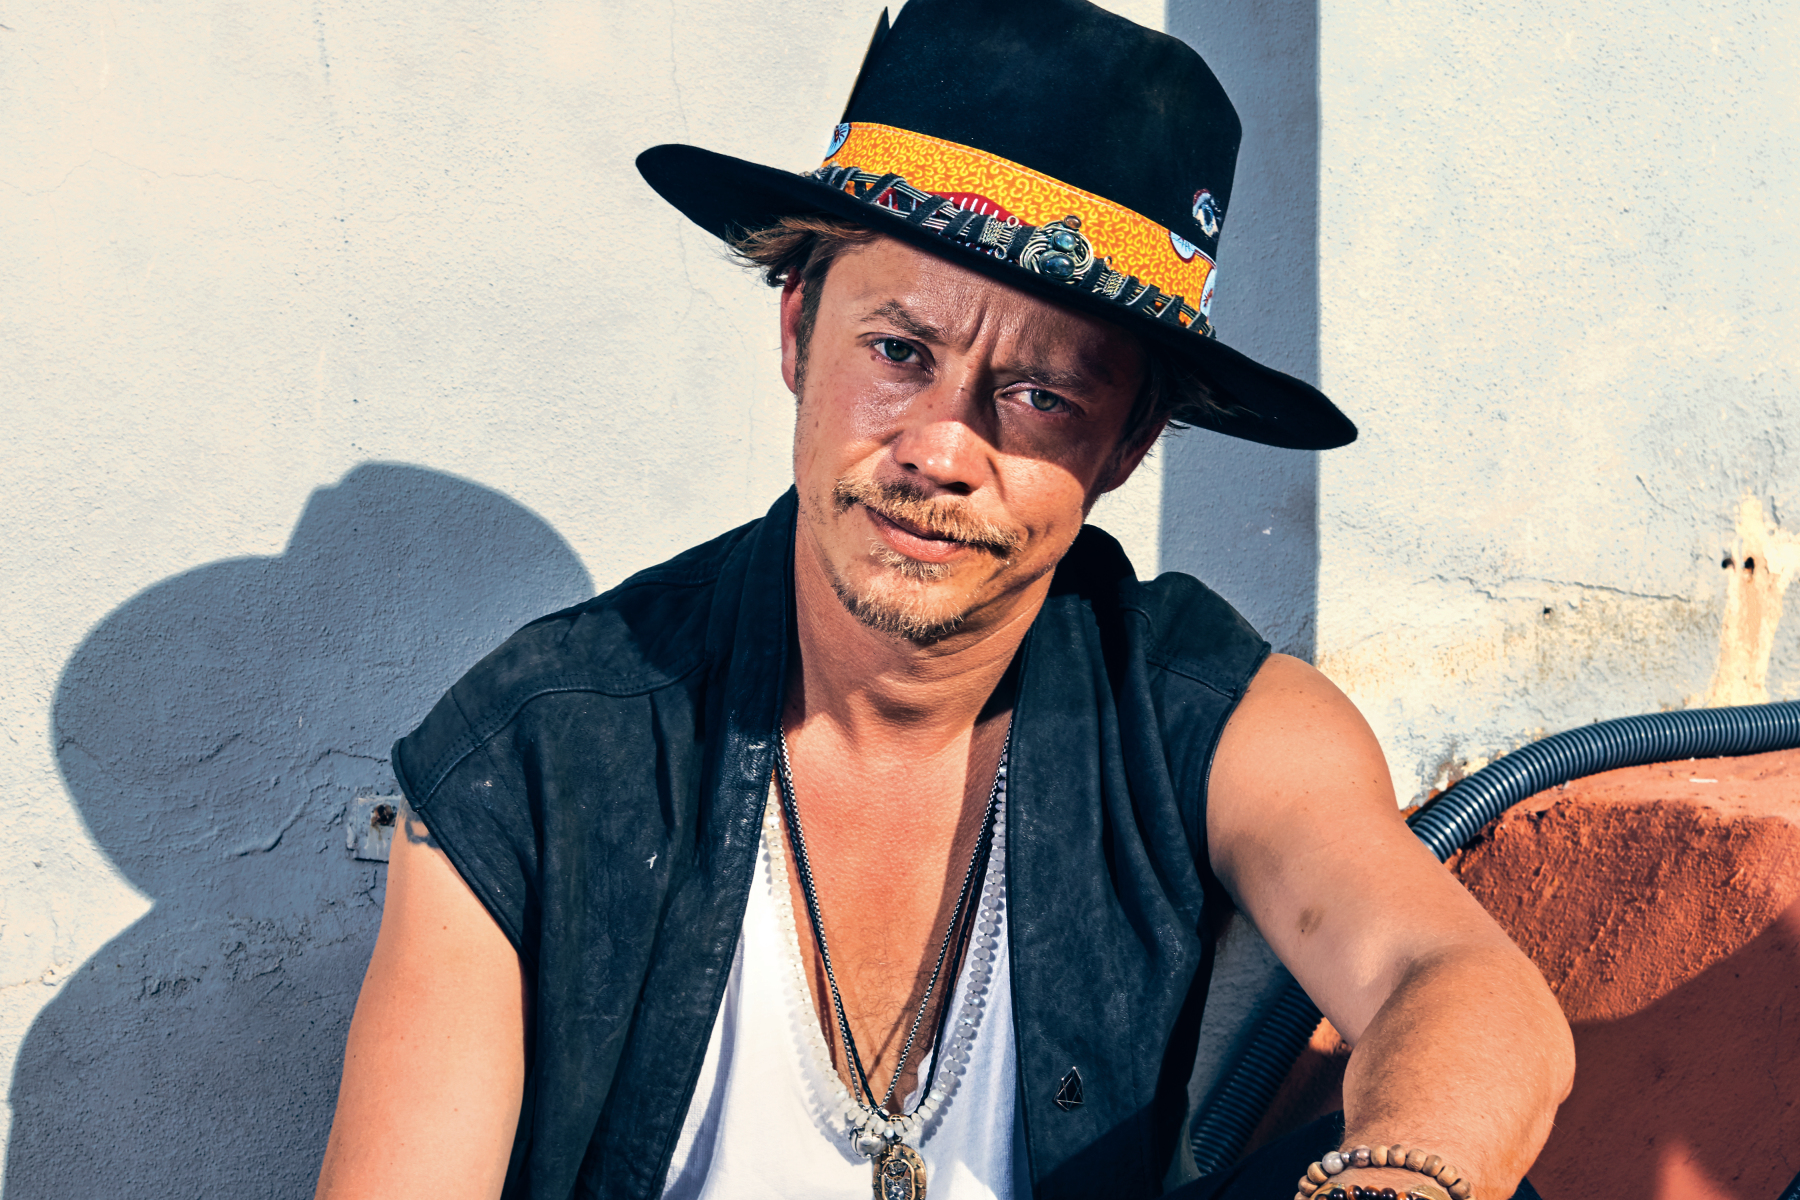 Brock Pierce Biography, Facts & Life Story Updated 2021